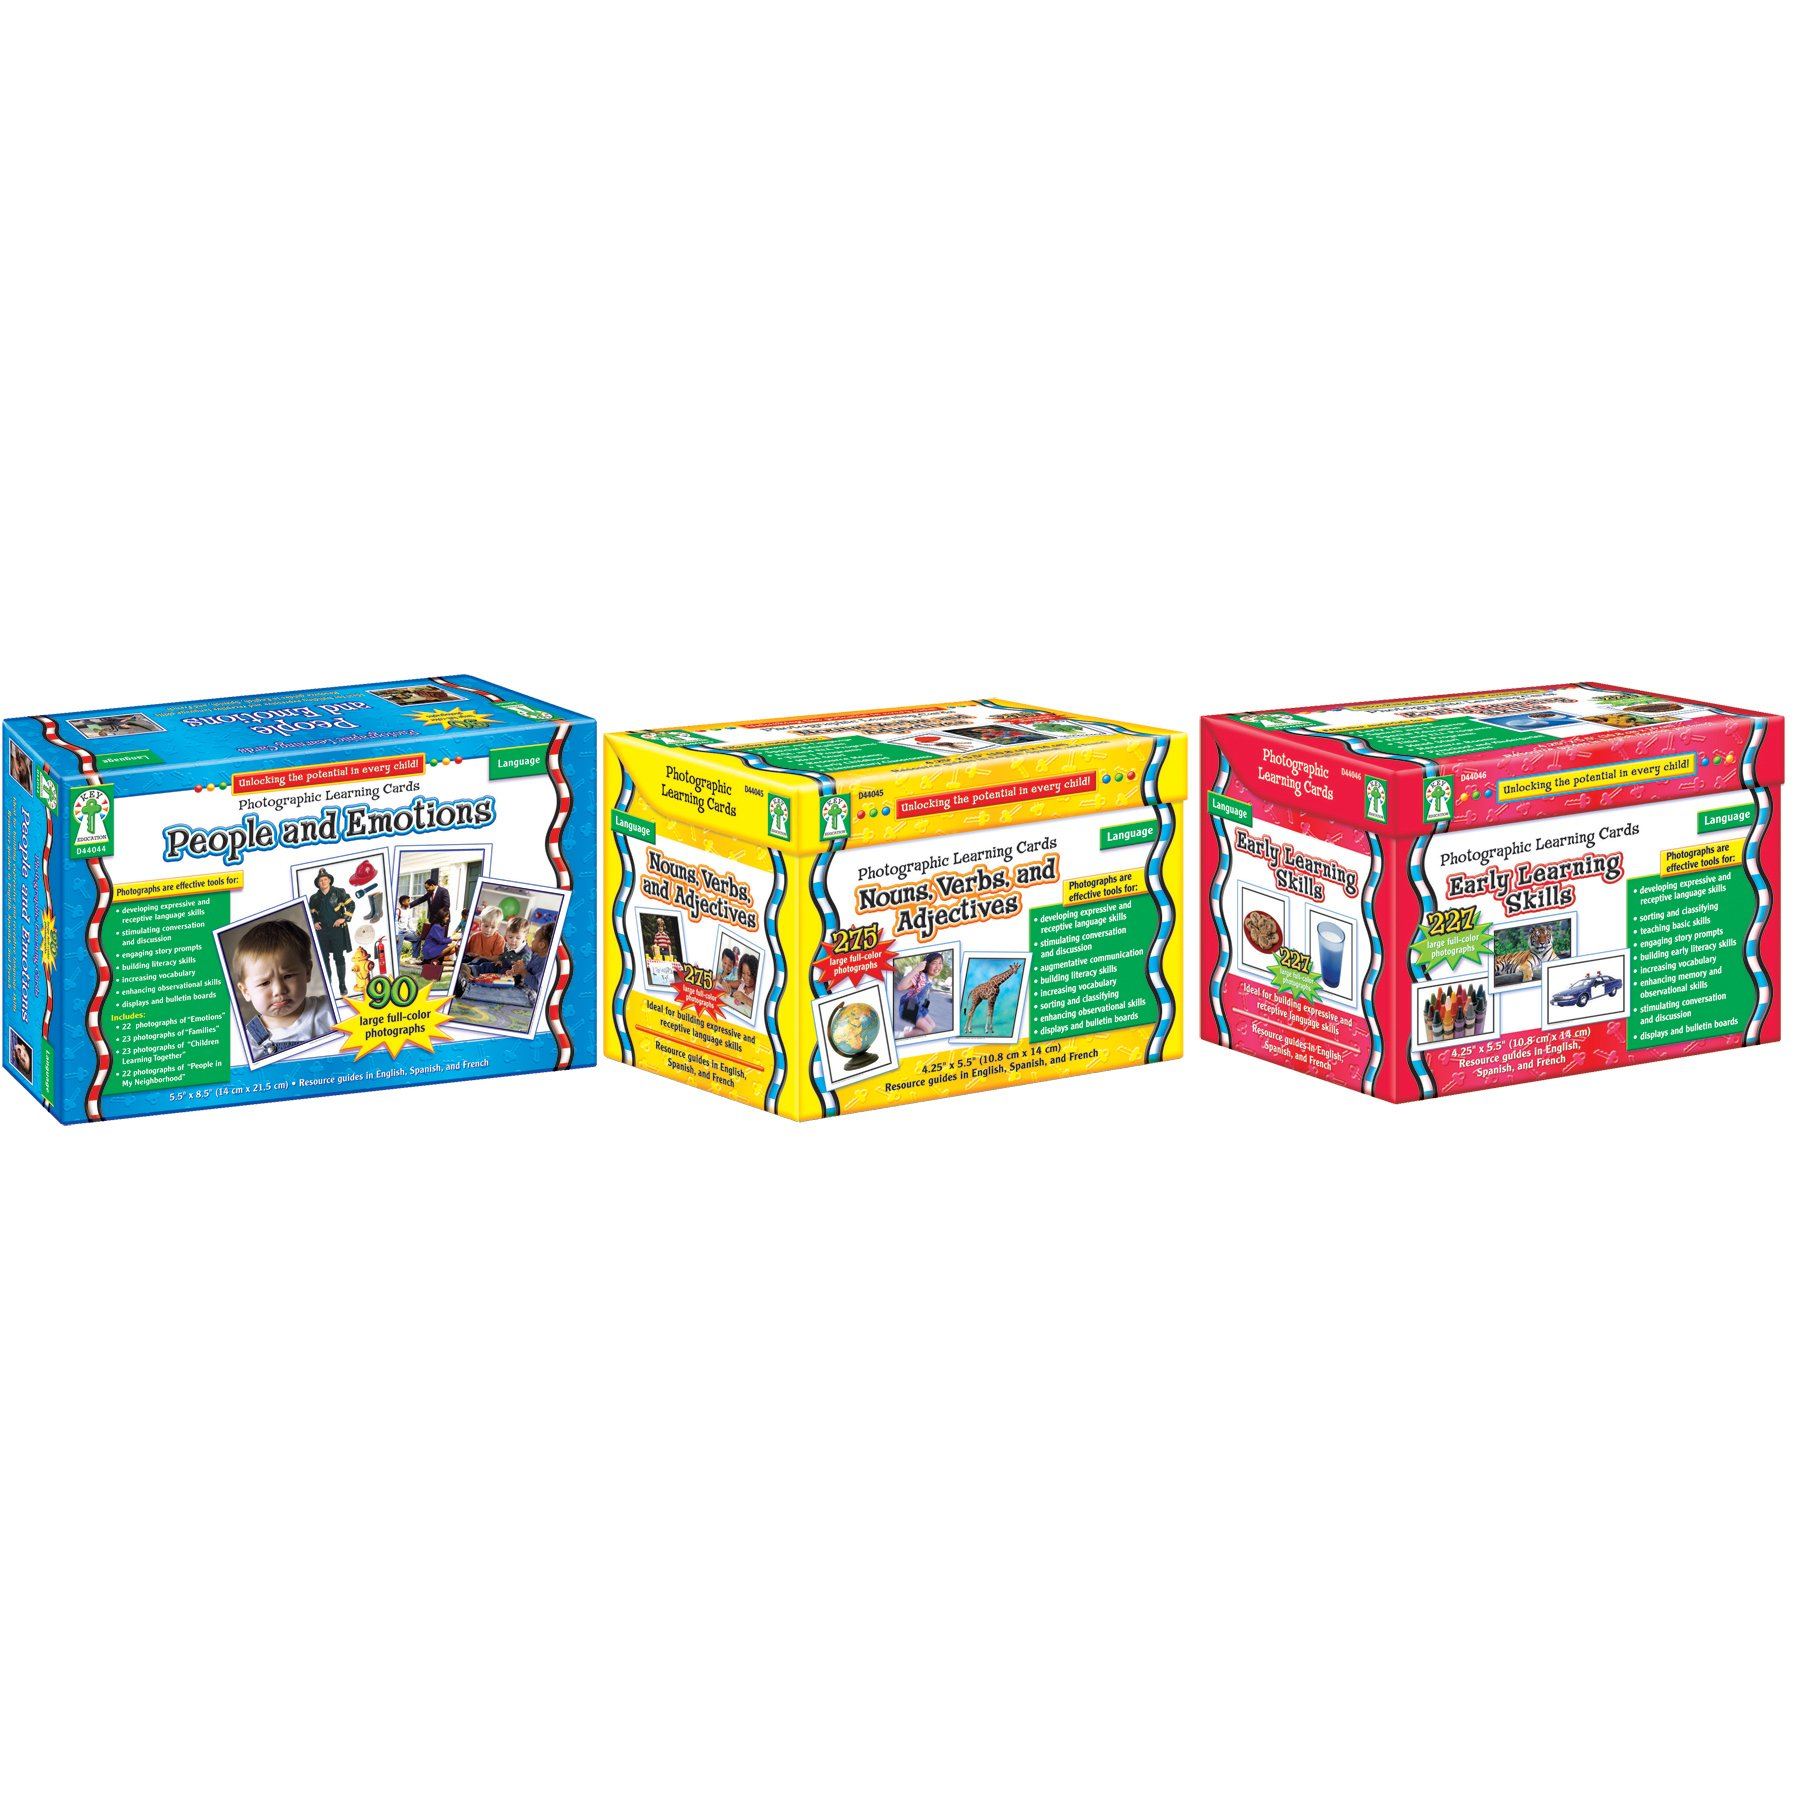 Carson-Dellosa CD-D44047 Classroom Photographic Learning Card Set (Pack of 534)